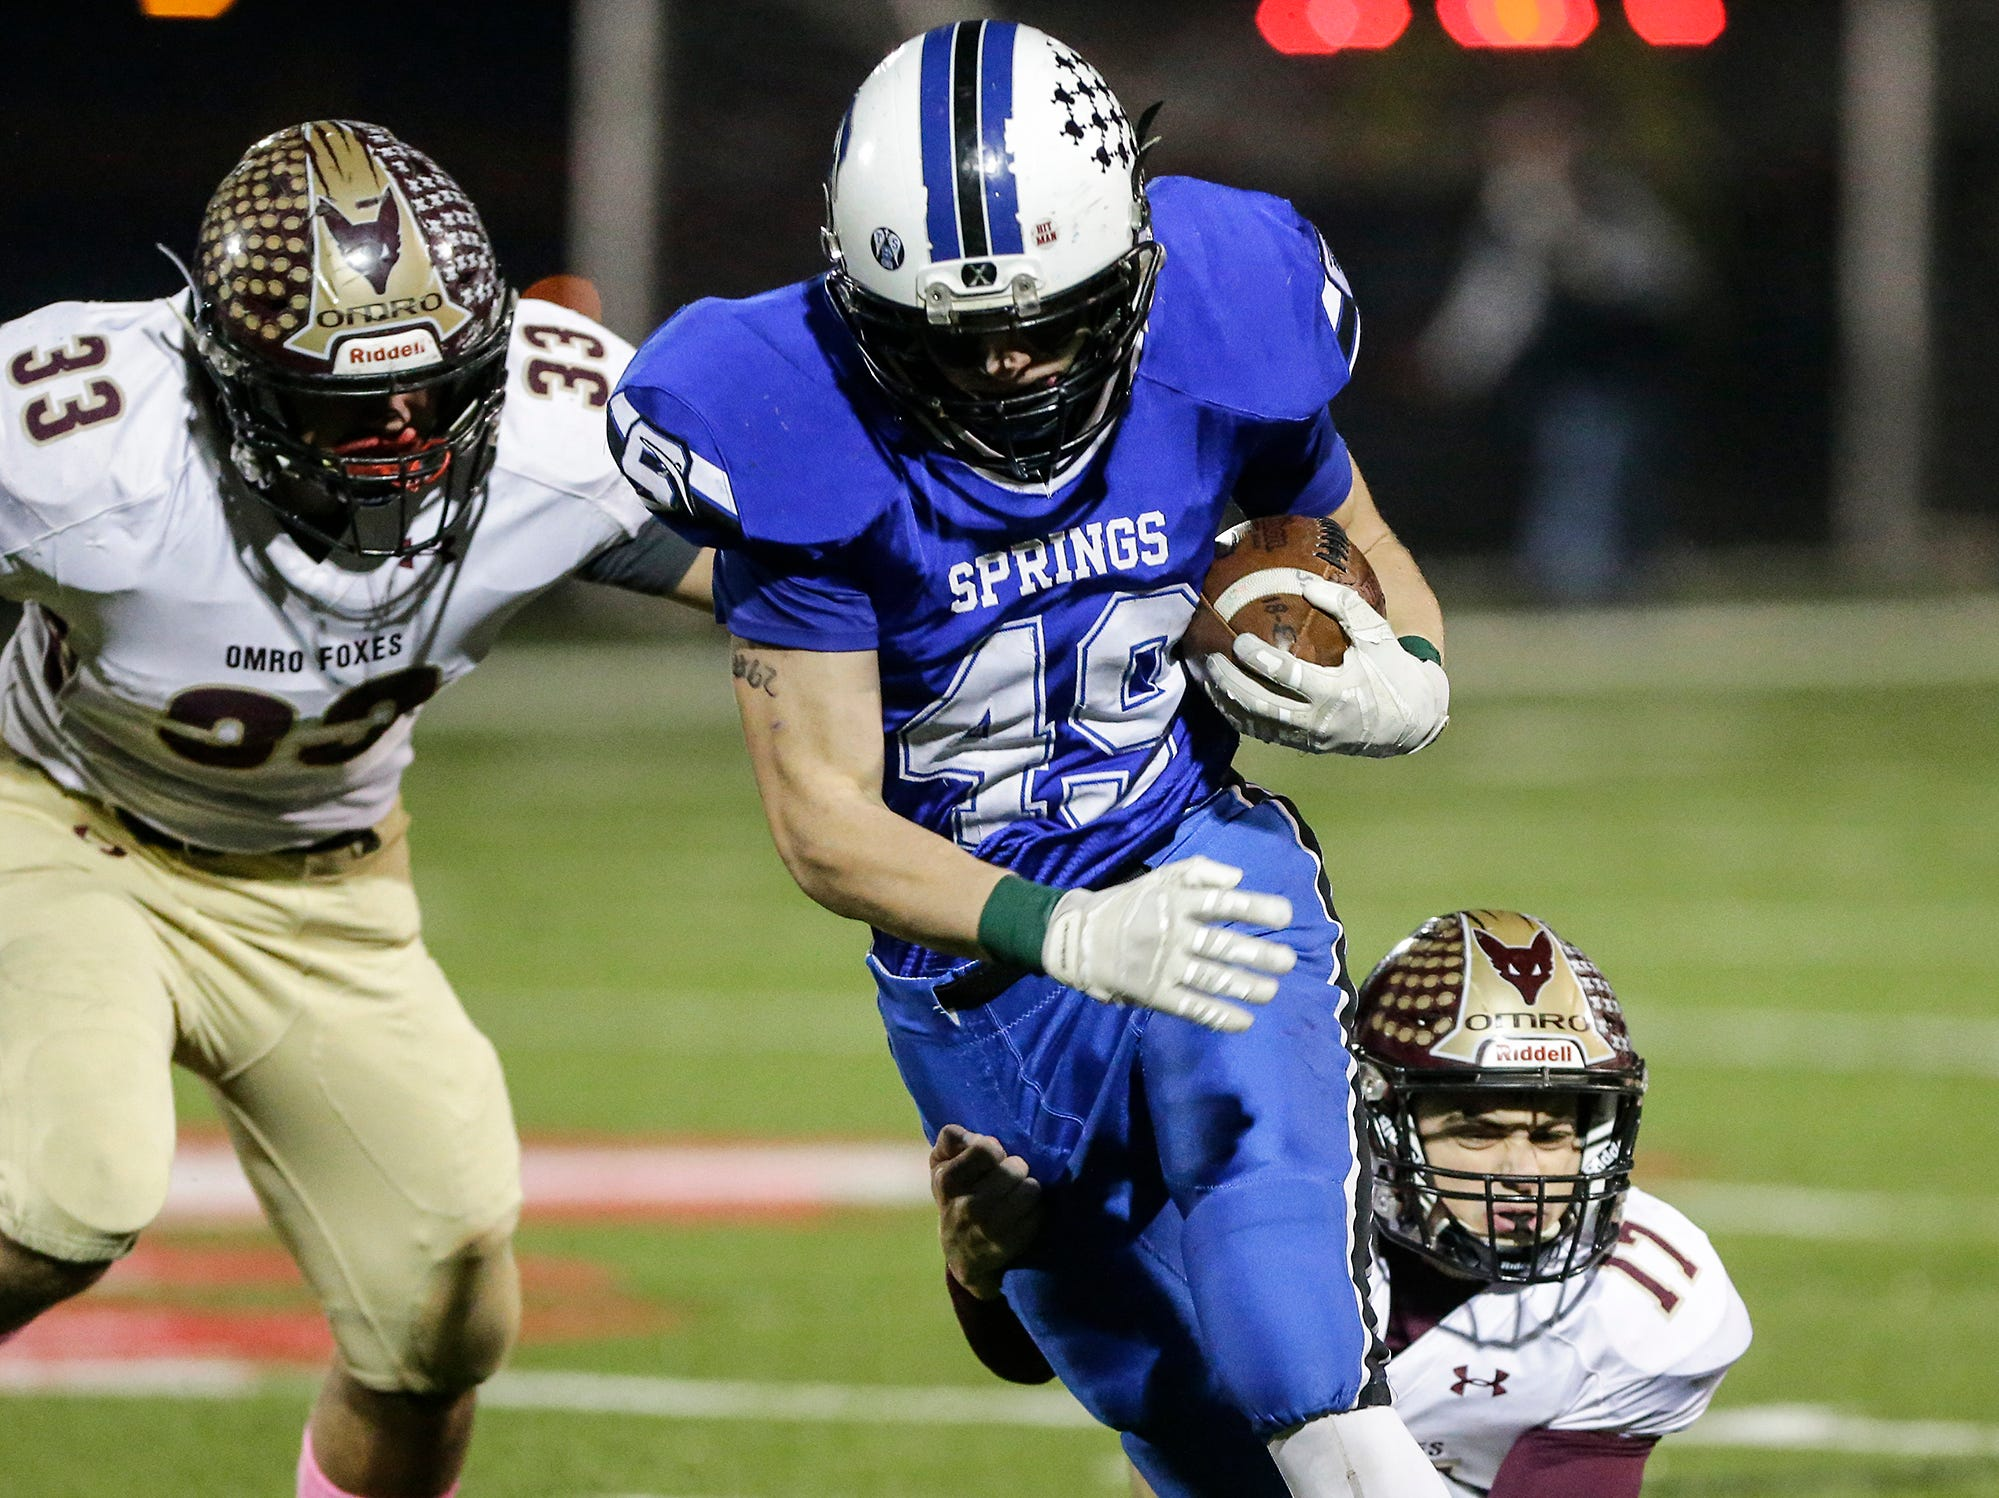 St. Mary's Springs Academy football's Jake Hoch breaks a tackle from Omro High School's Ben Wellhoefer Friday, October 26, 2018 during their WIAA division five, level 2 playoff game played in Lomira, Wisconsin. Springs won the match-up 33-20. Doug Raflik/USA TODAY NETWORK-Wisconsin